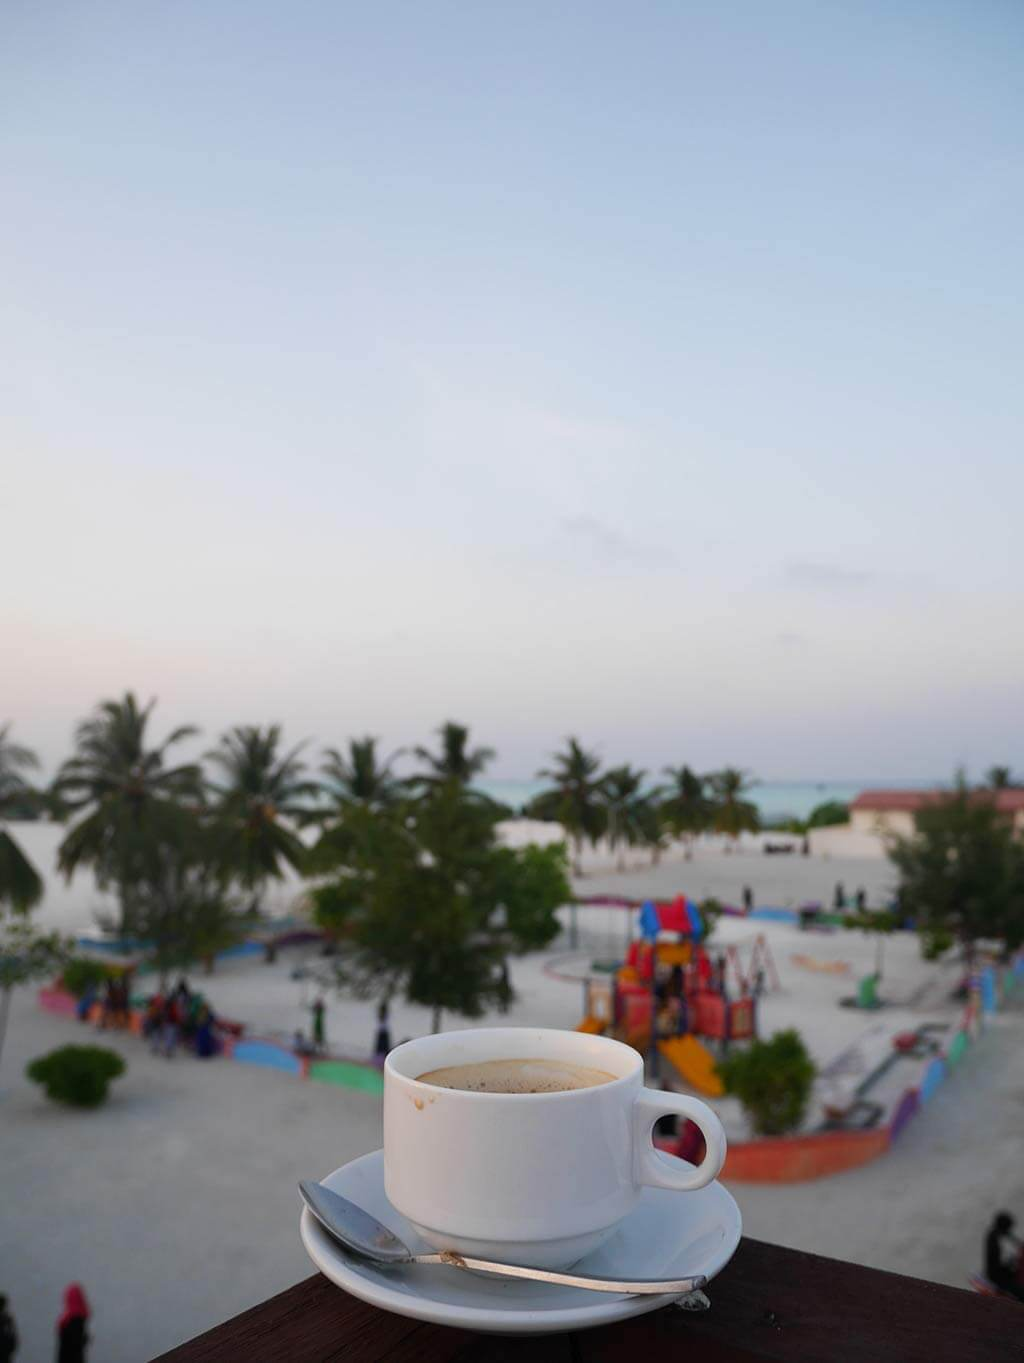 Coffee on top of island deck overlooking children's playground, Gaafaru, Maldives | Laugh Travel Eat